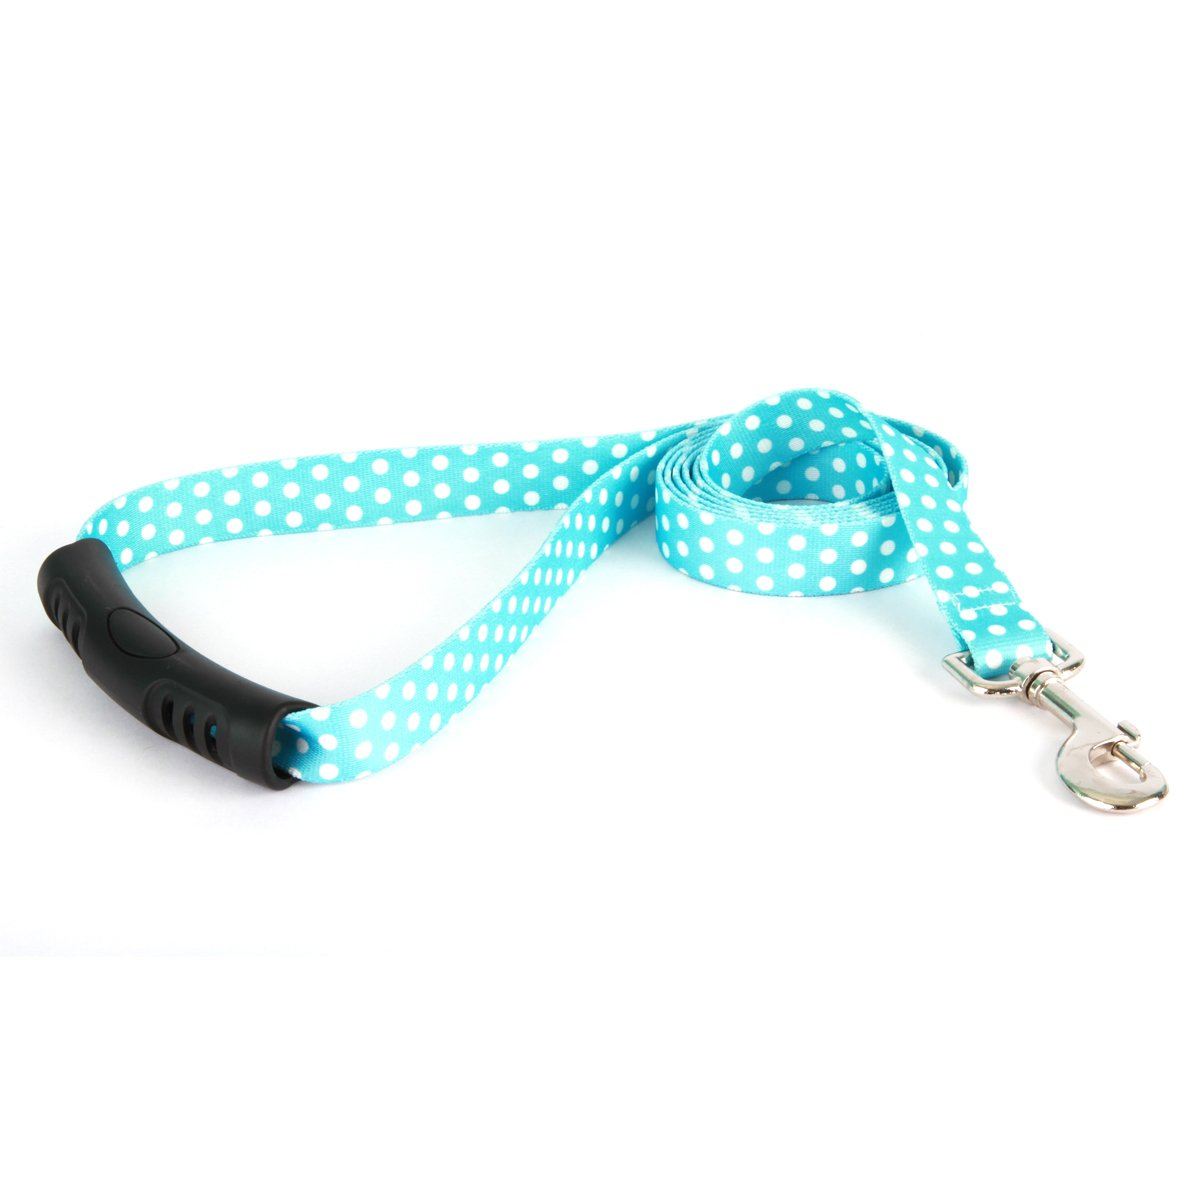 Yellow Dog Design New Blue Polka Dot Step-in Dog Harness, Large-1'' Wide and fits Chest of 25 to 40'' by Yellow Dog Design